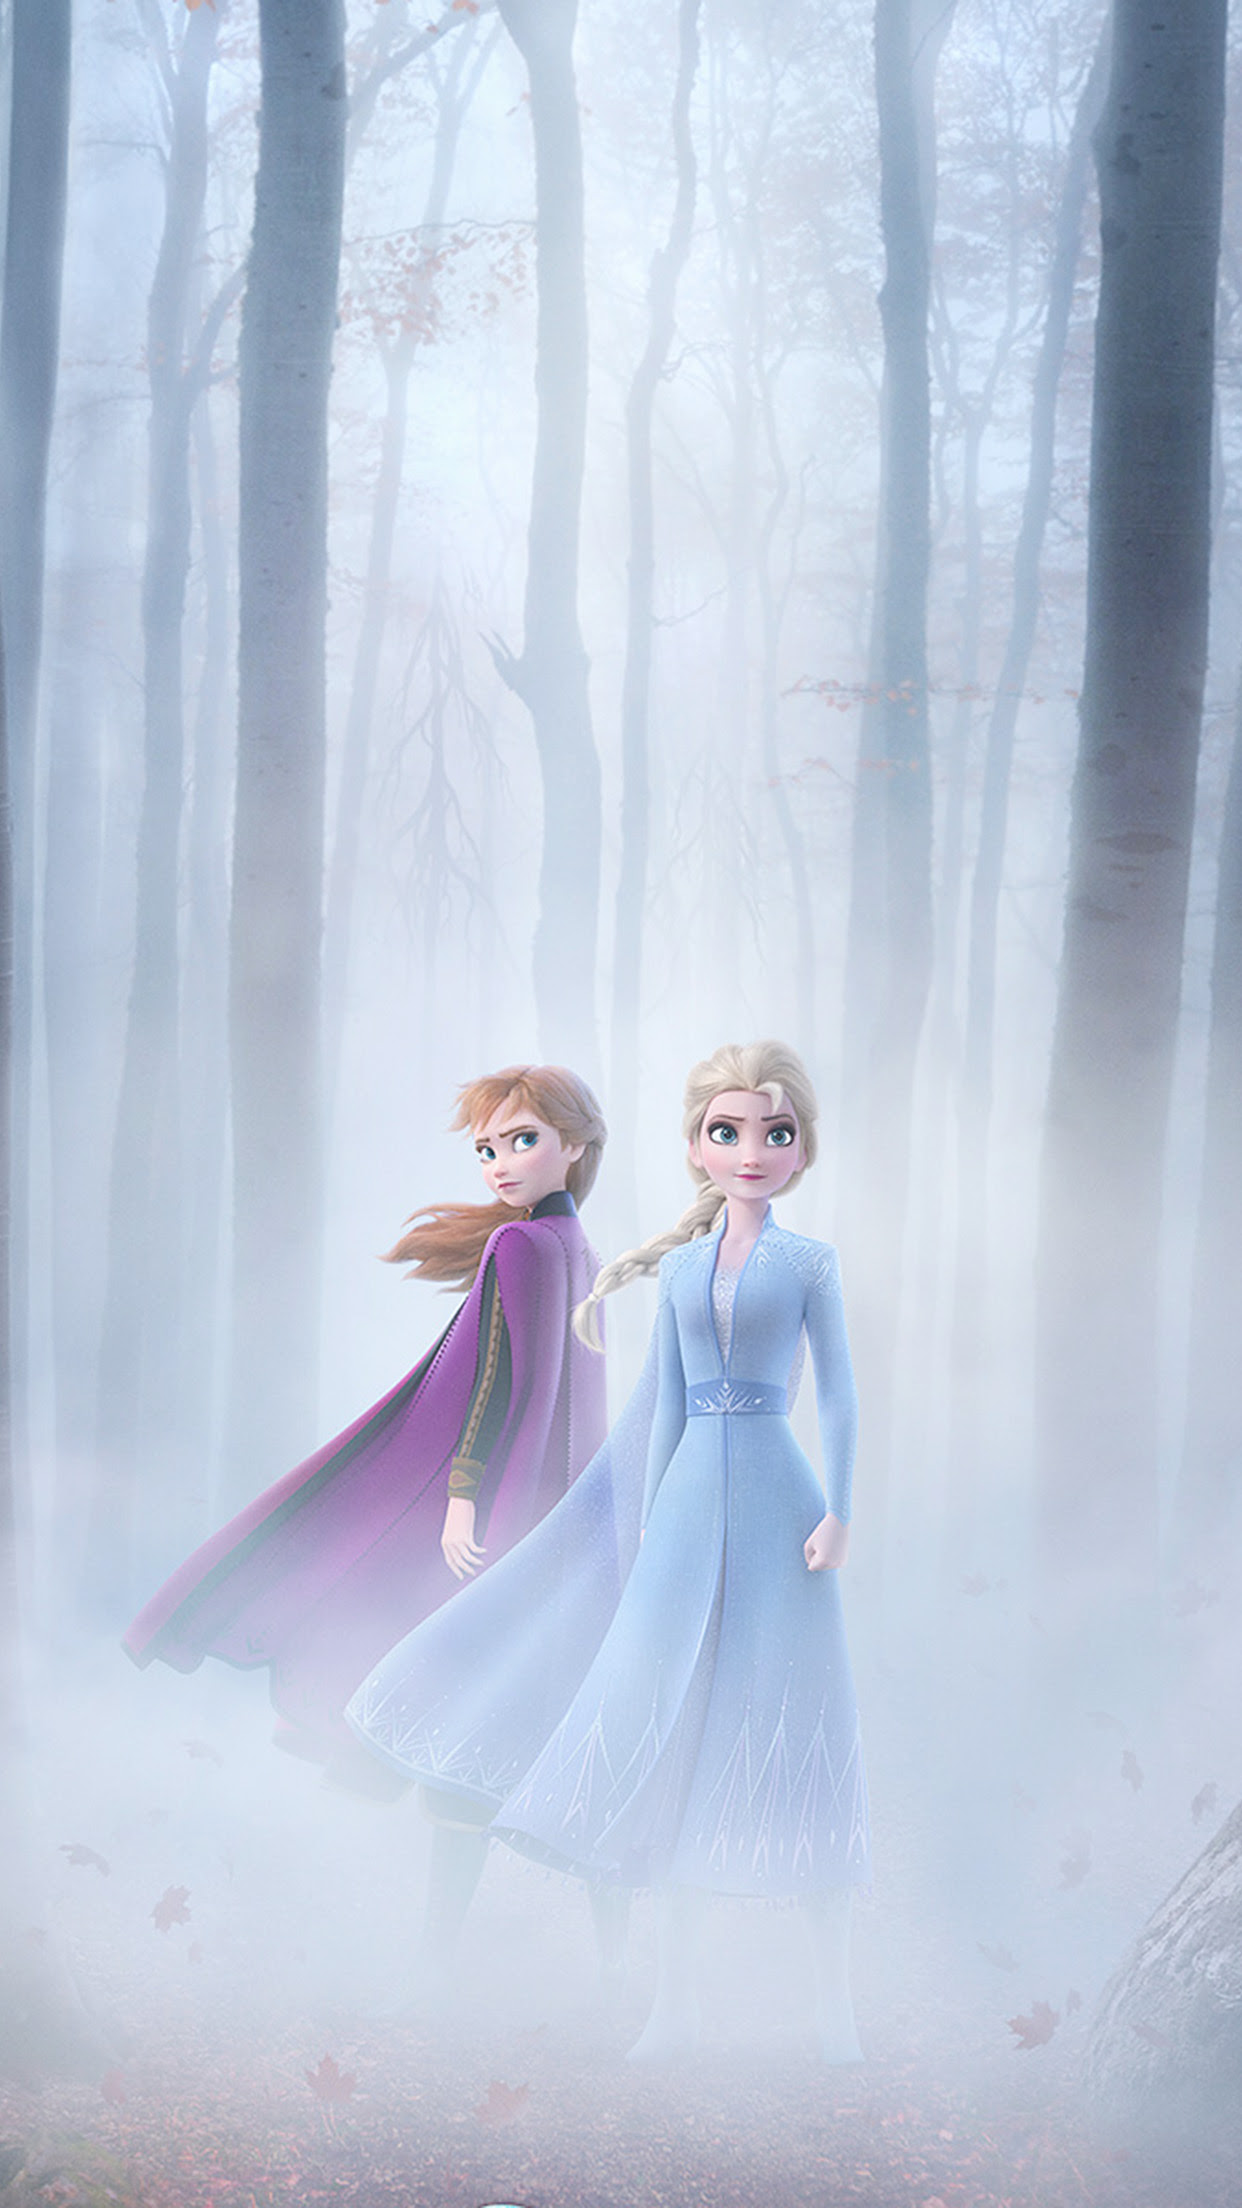 Iphone6papers Com Iphone 6 Wallpaper Bj56 Frozen Anna Elsa